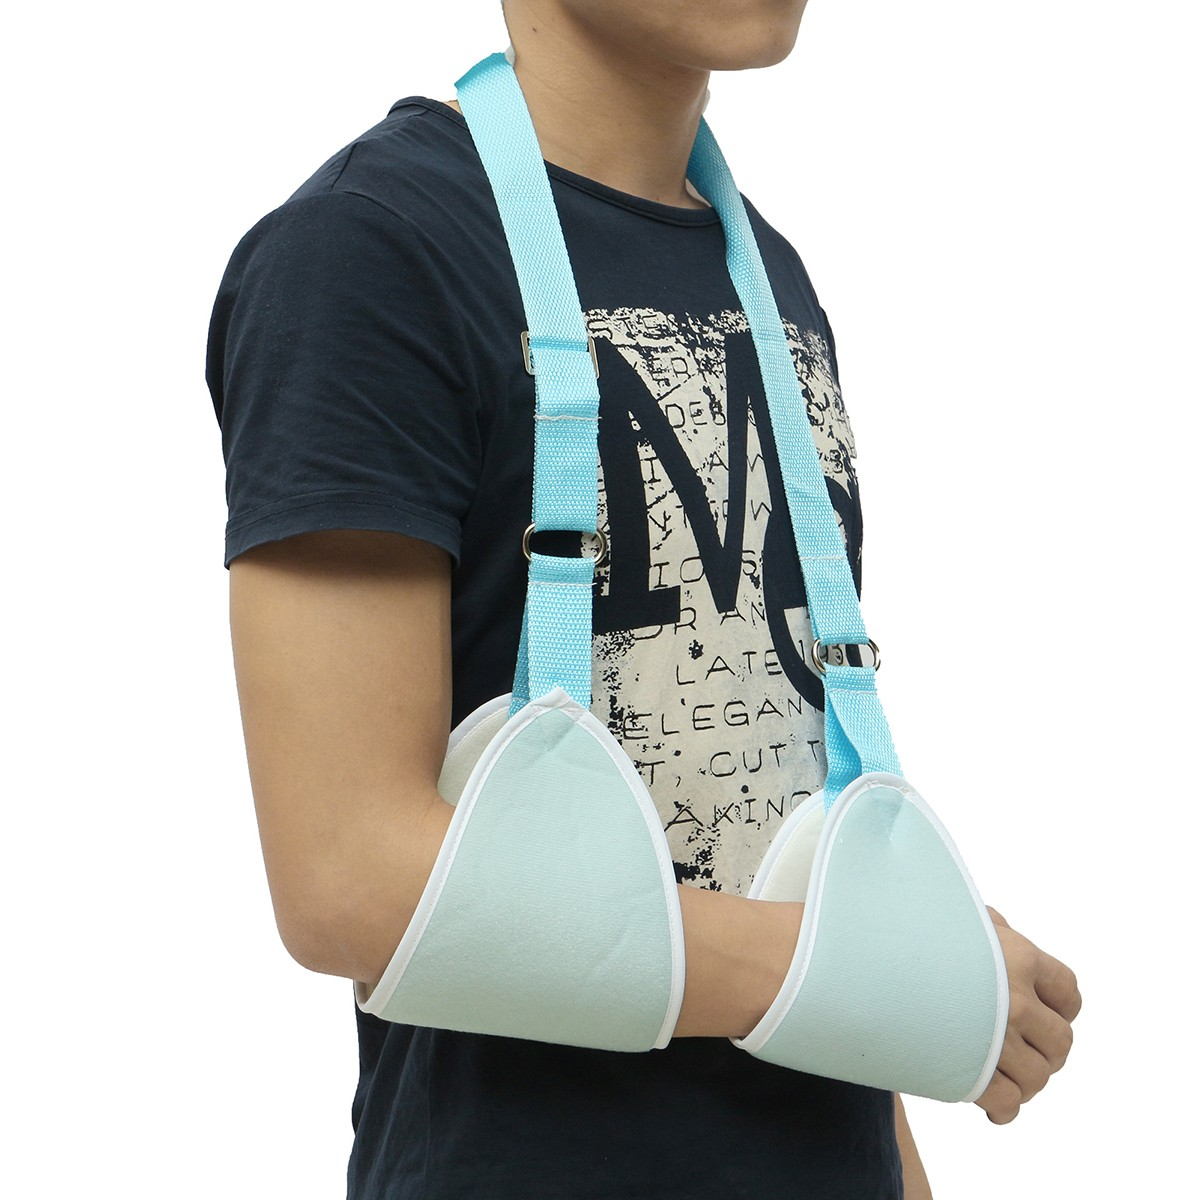 Arm Sling Shoulder Immobilizer Support Padded Pain Relief Brace Device